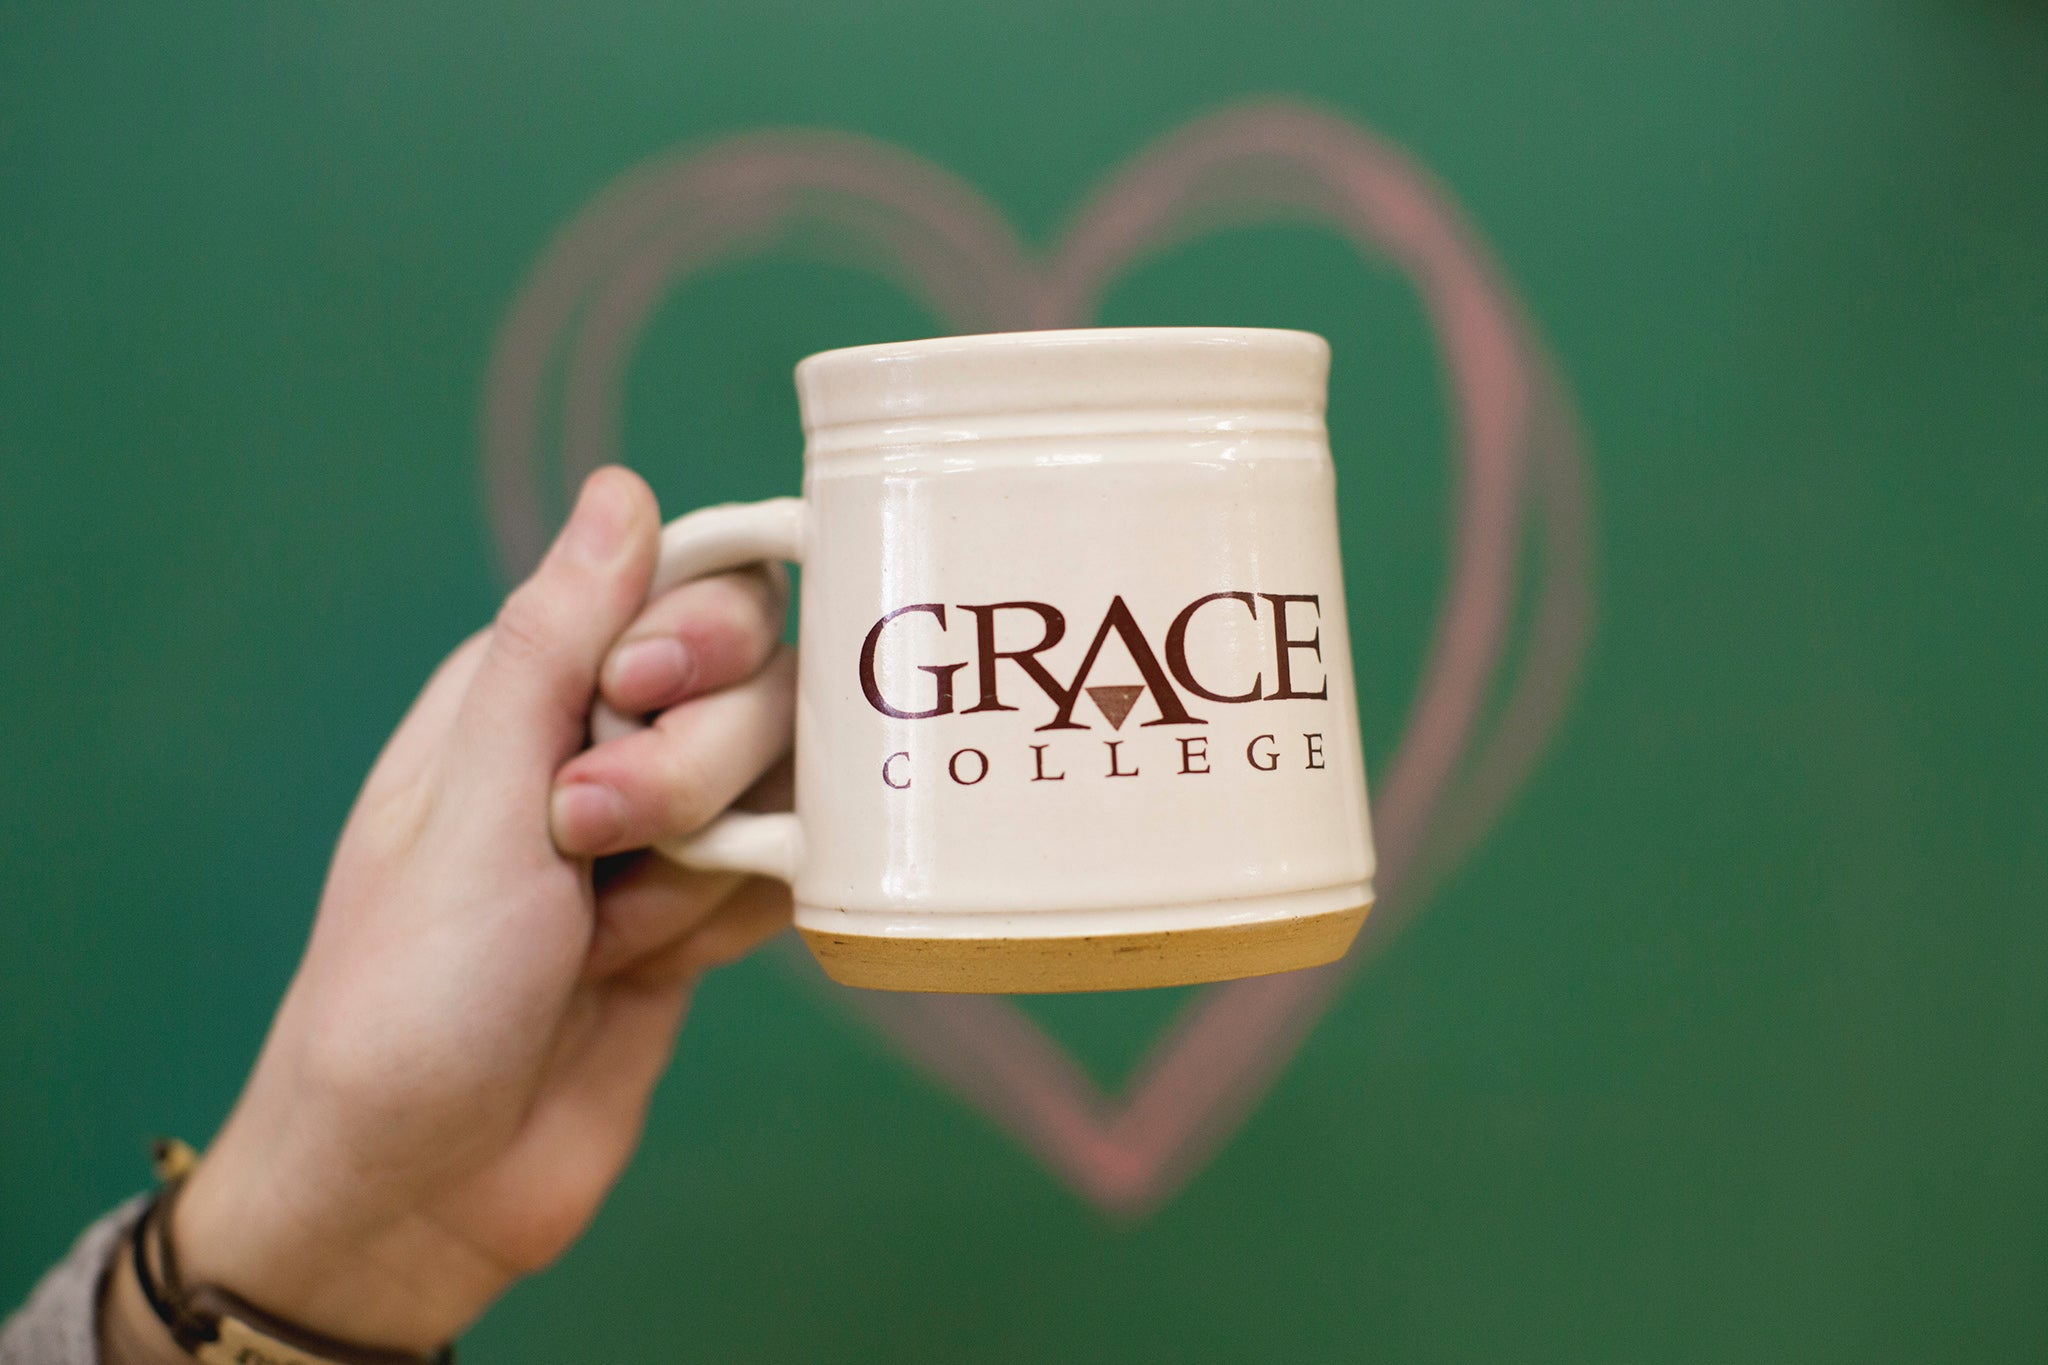 Grace College custom mug